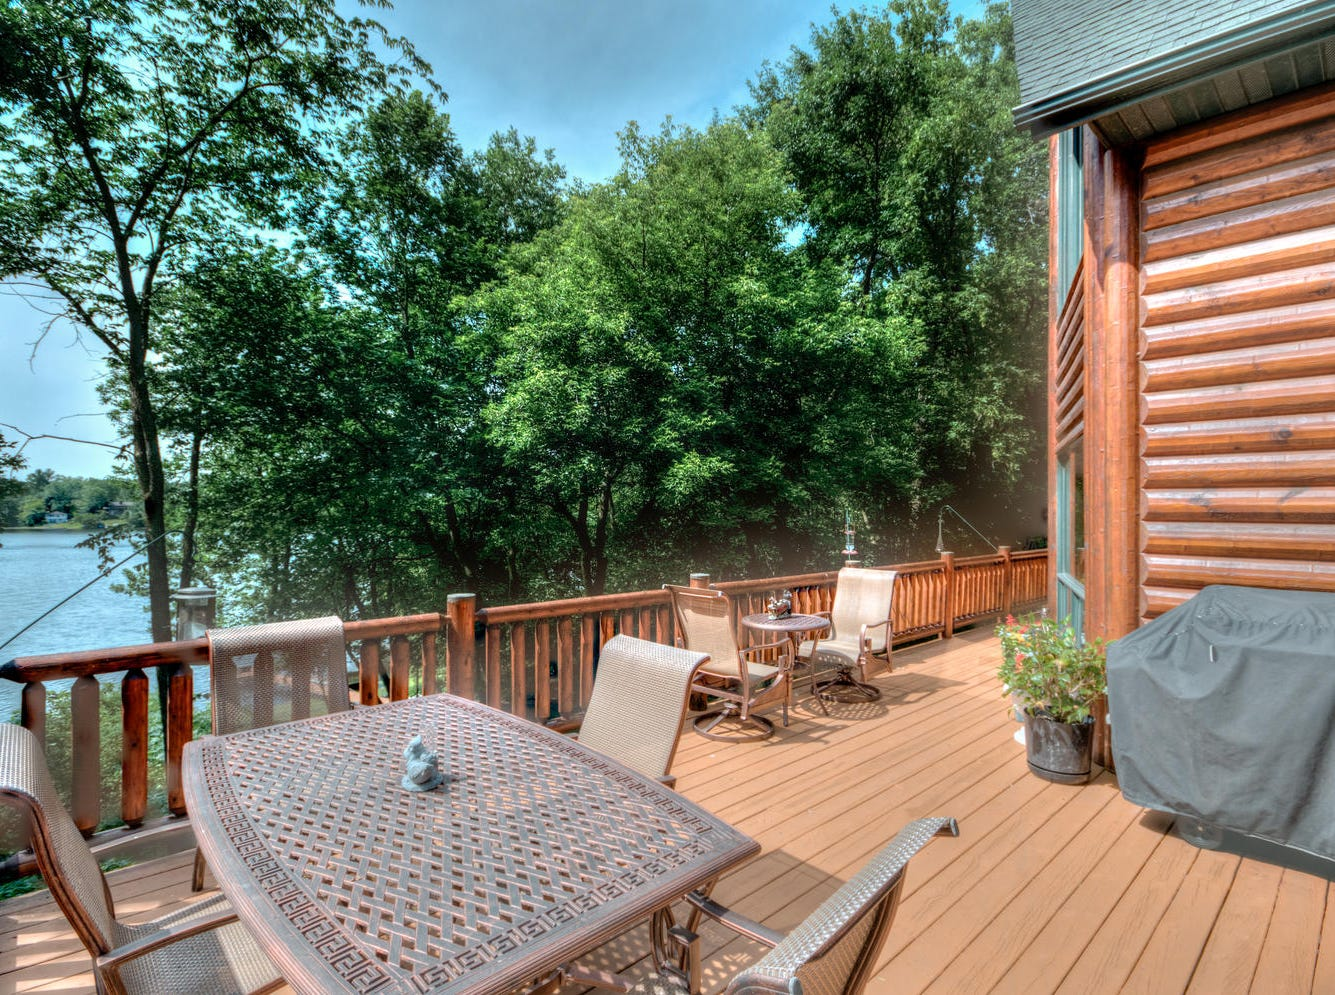 The waterfront can be viewed from the generous second-story deck complete with a log railing, which also spans the length of the house